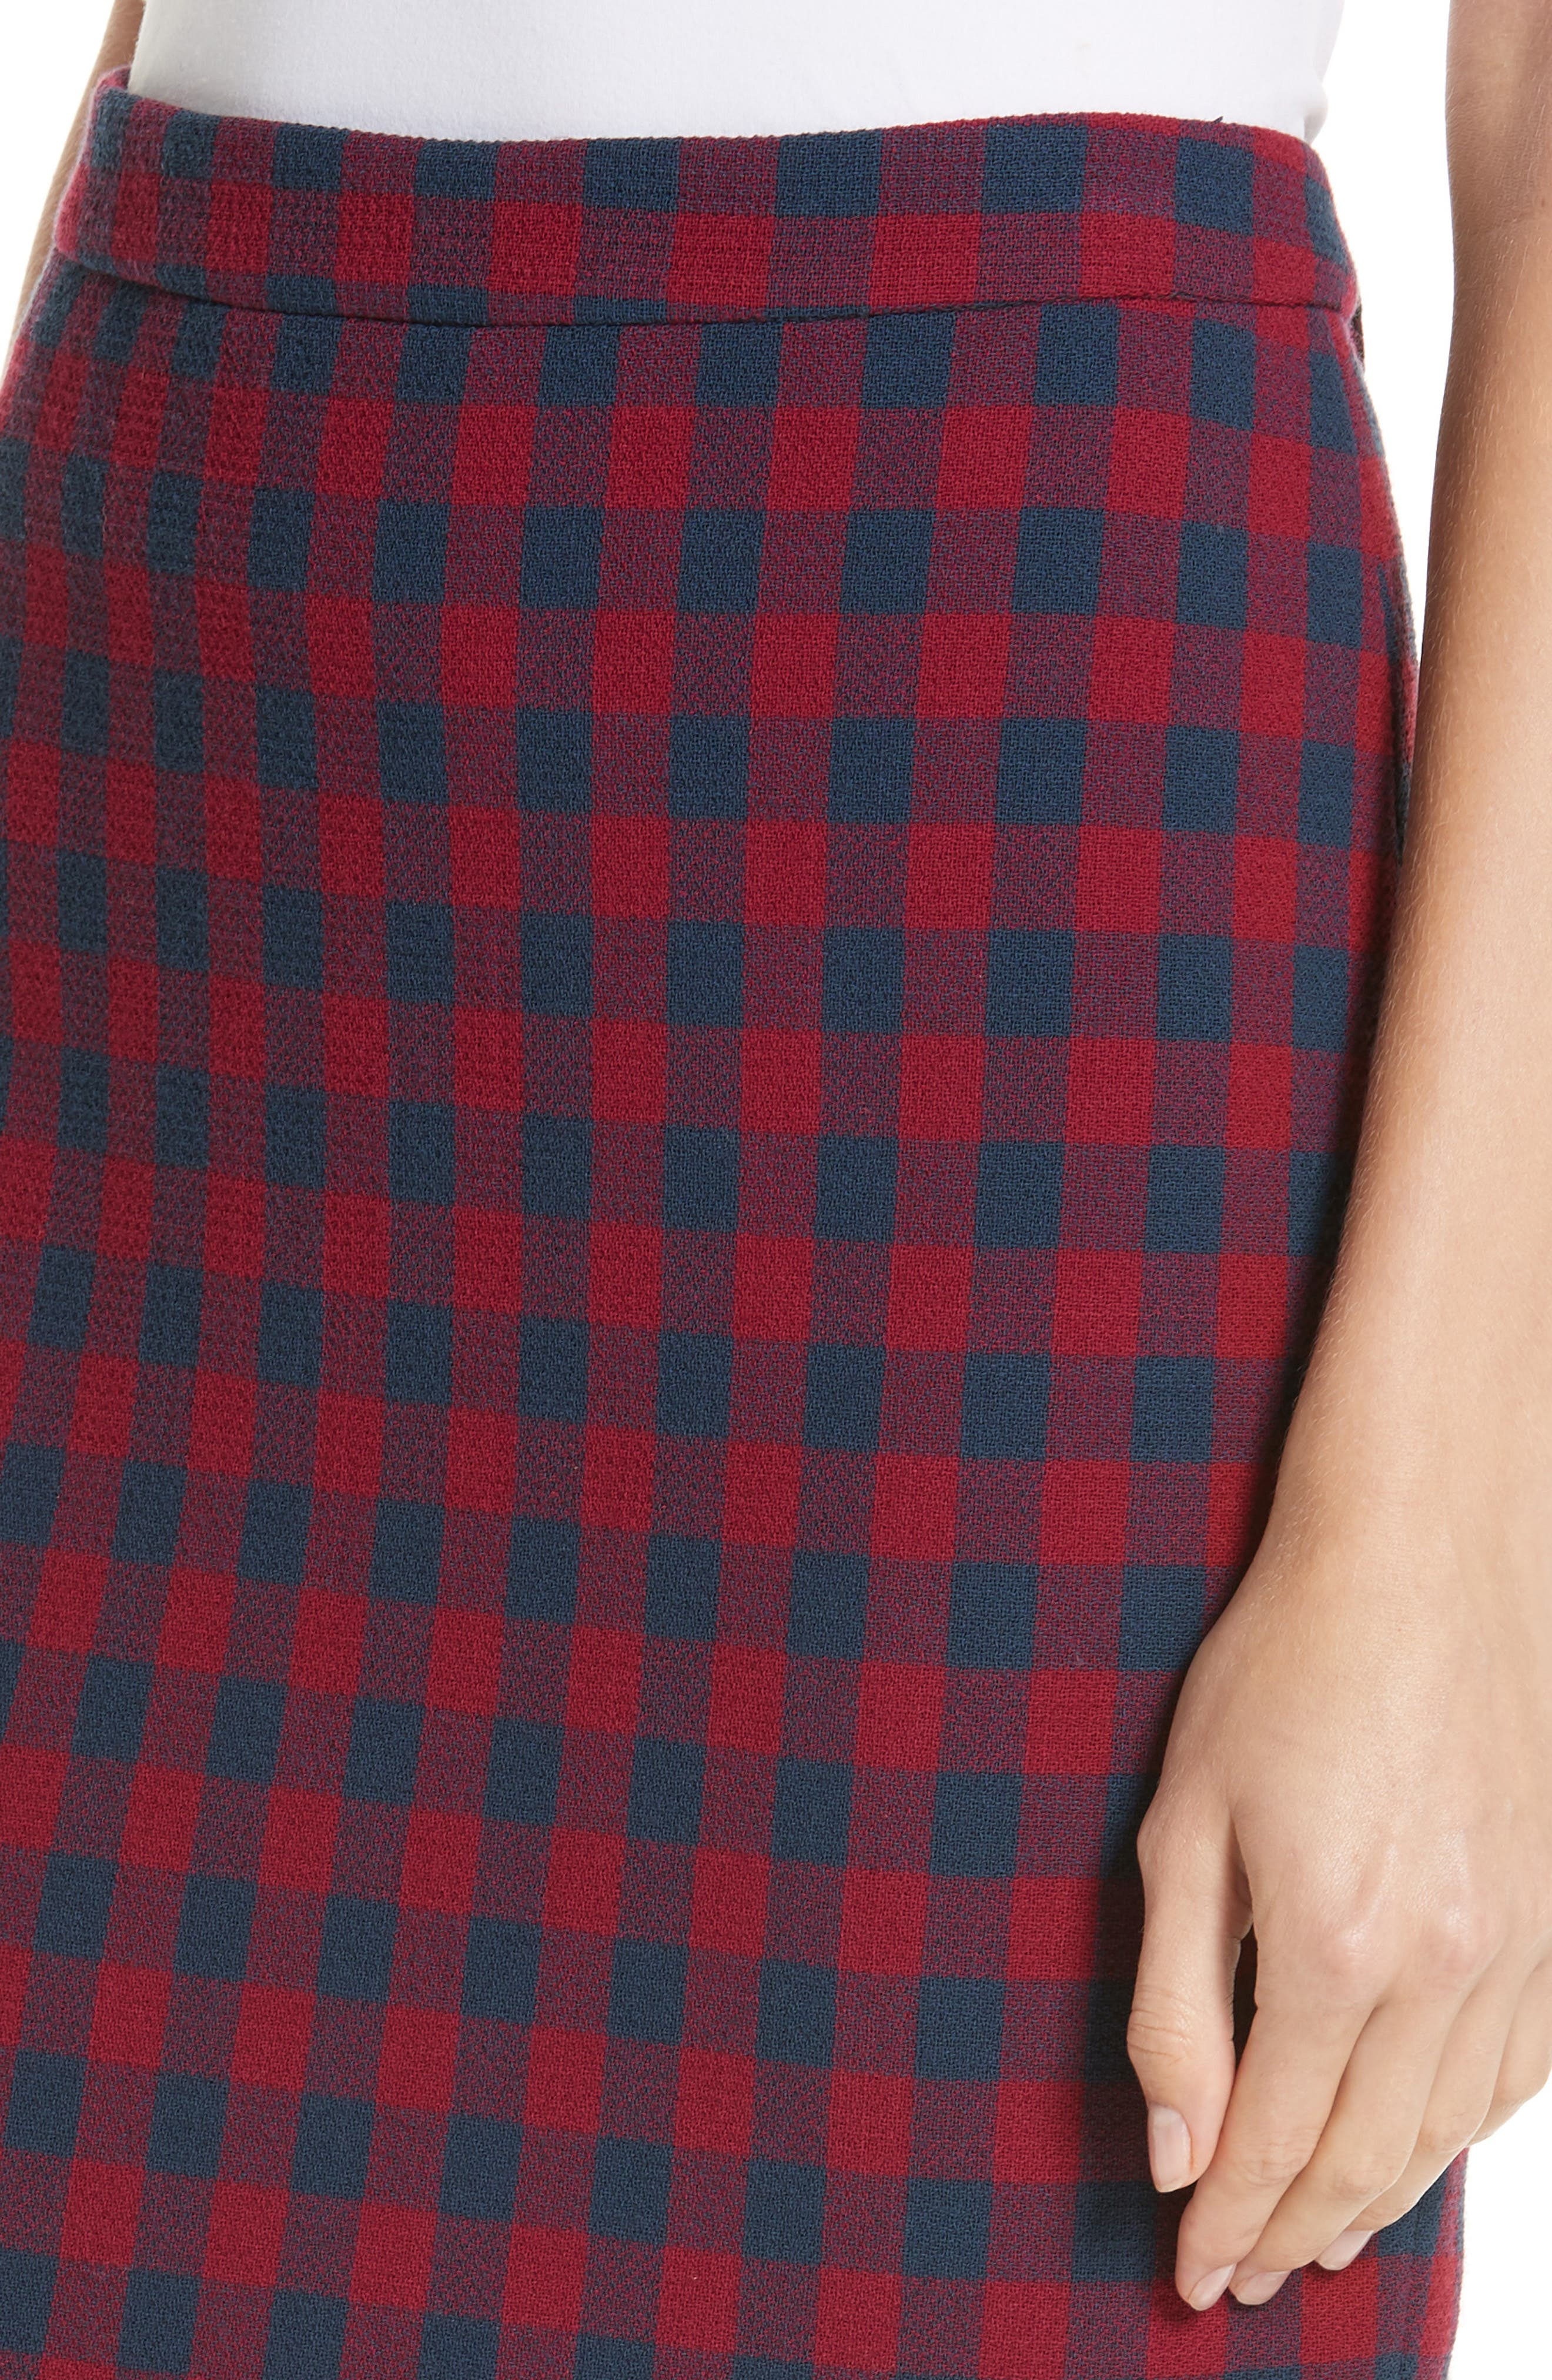 Thea Plaid Wool Pencil Skirt,                             Alternate thumbnail 4, color,                             BERRY/ NAVY